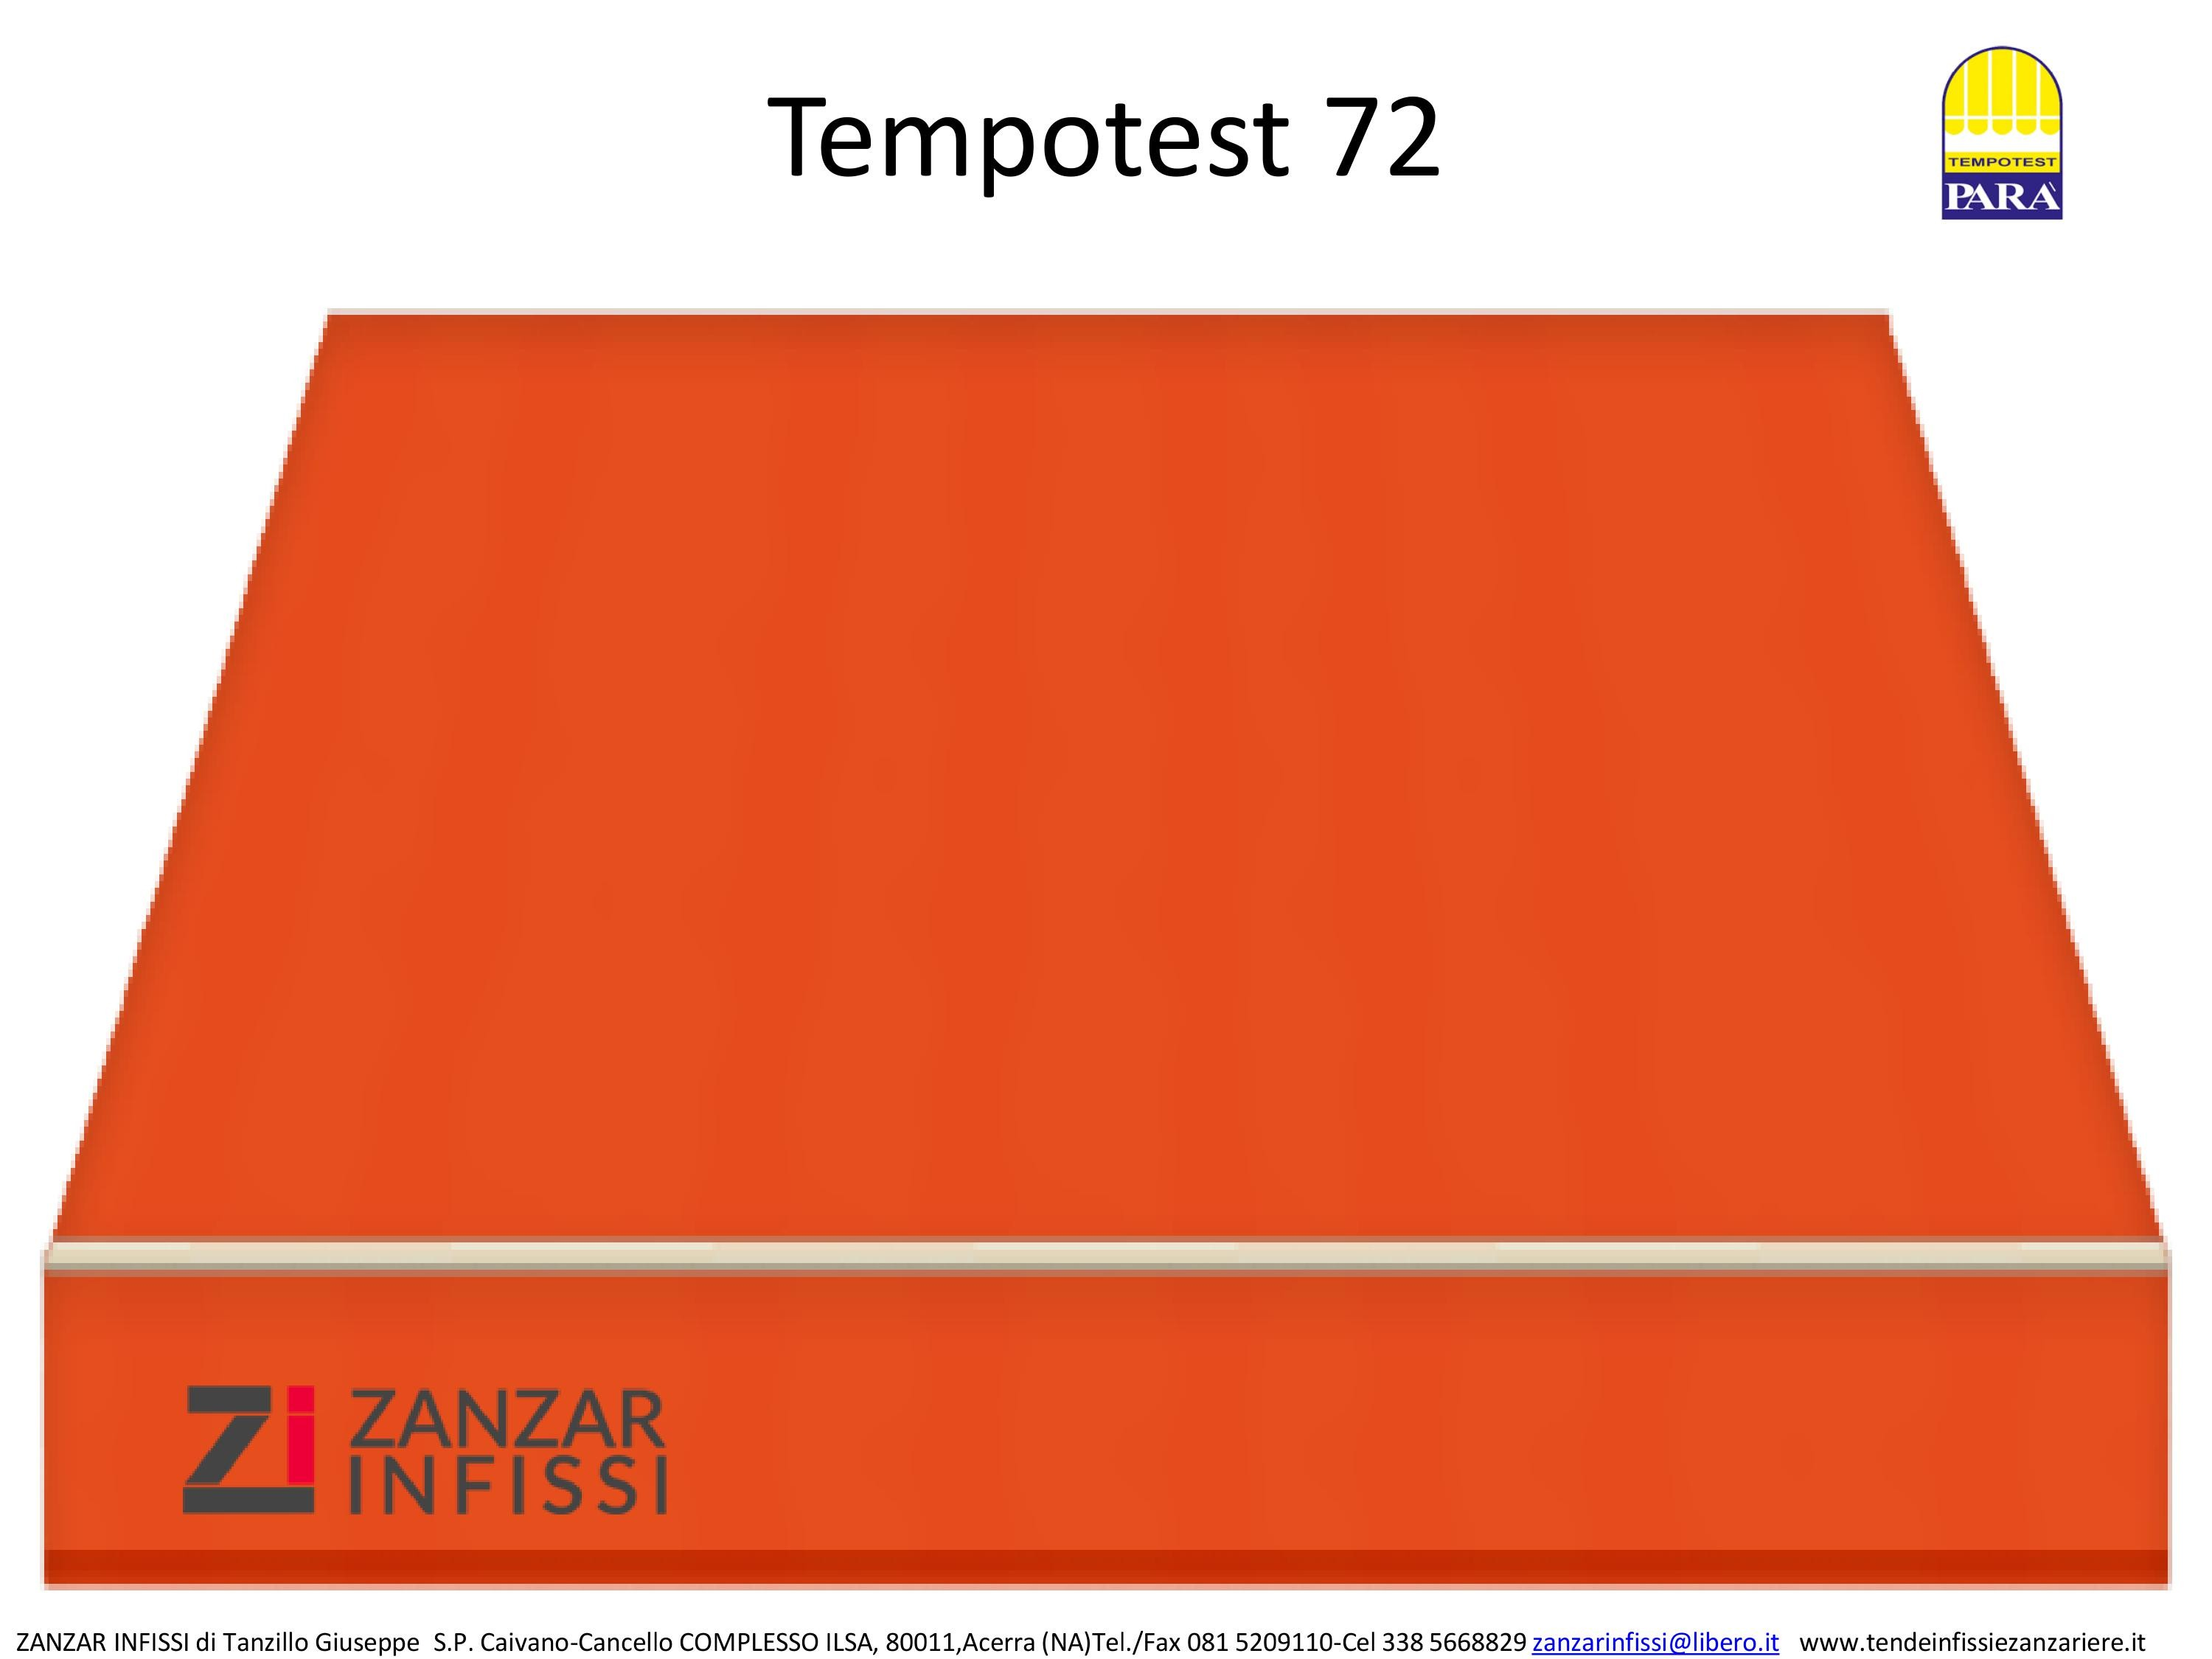 Tempotest 72